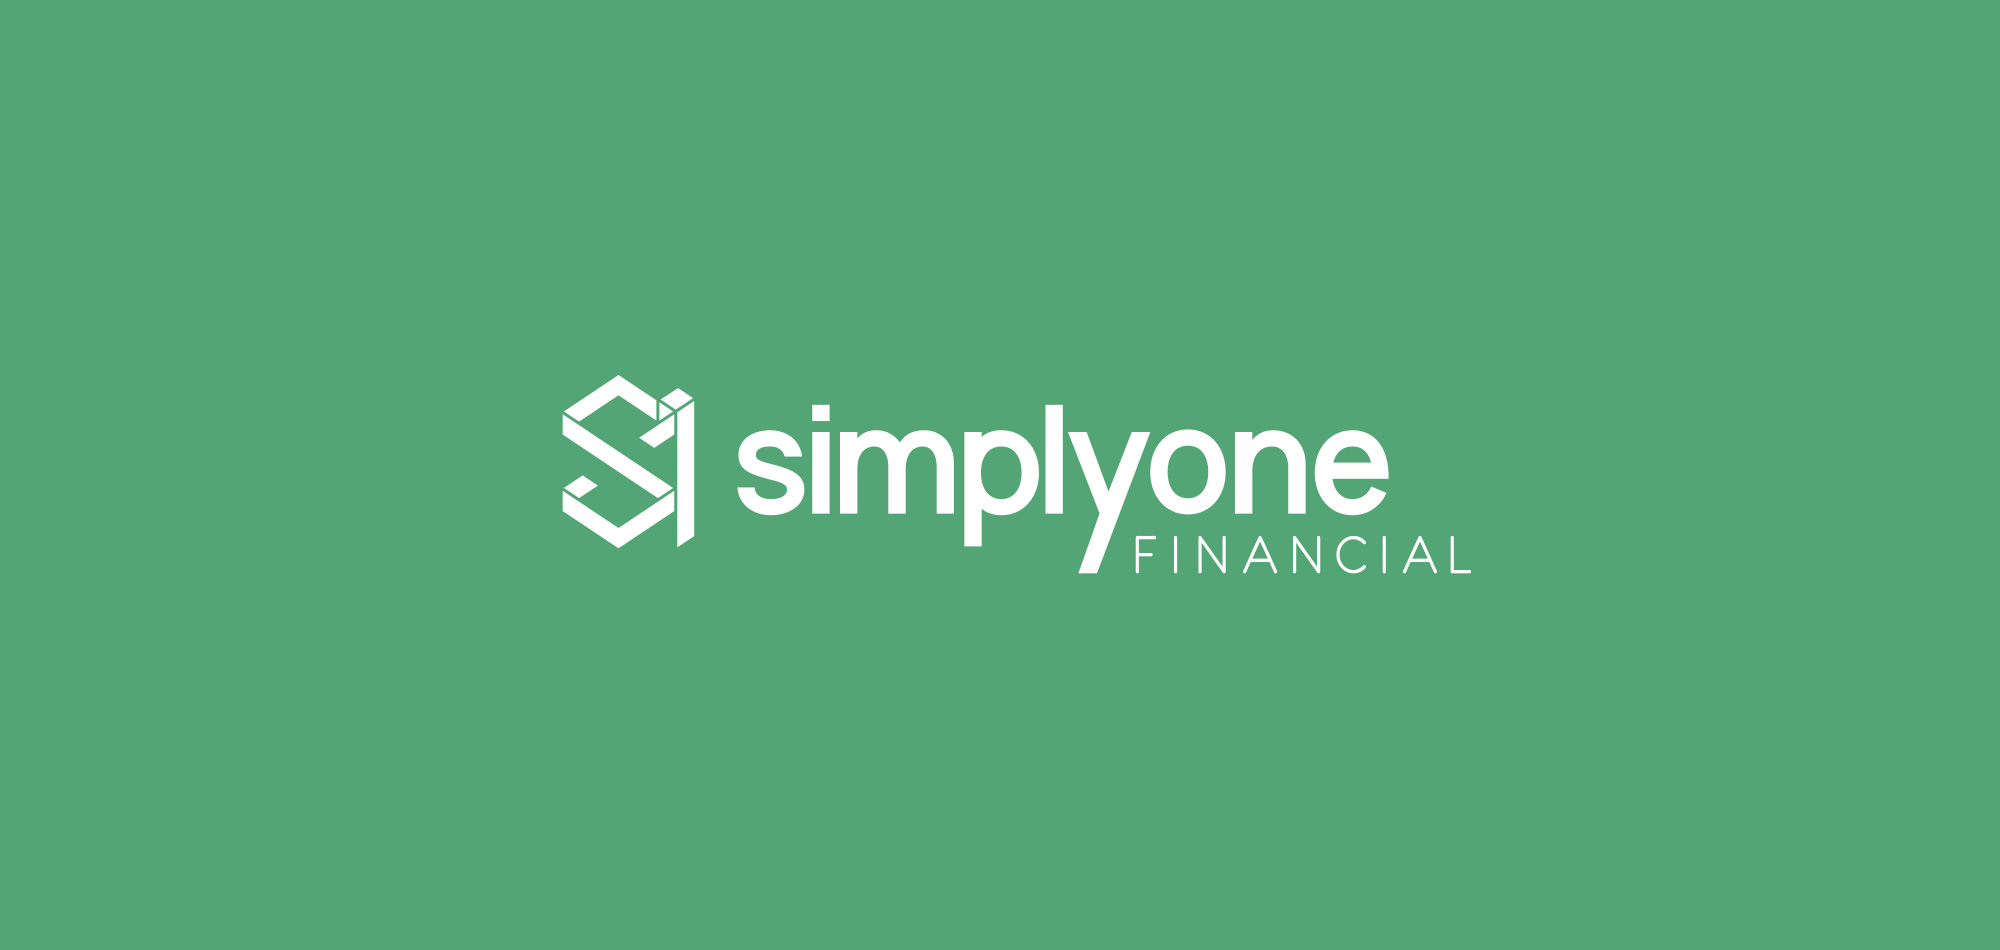 SIMPLY ONE FINANCIAL